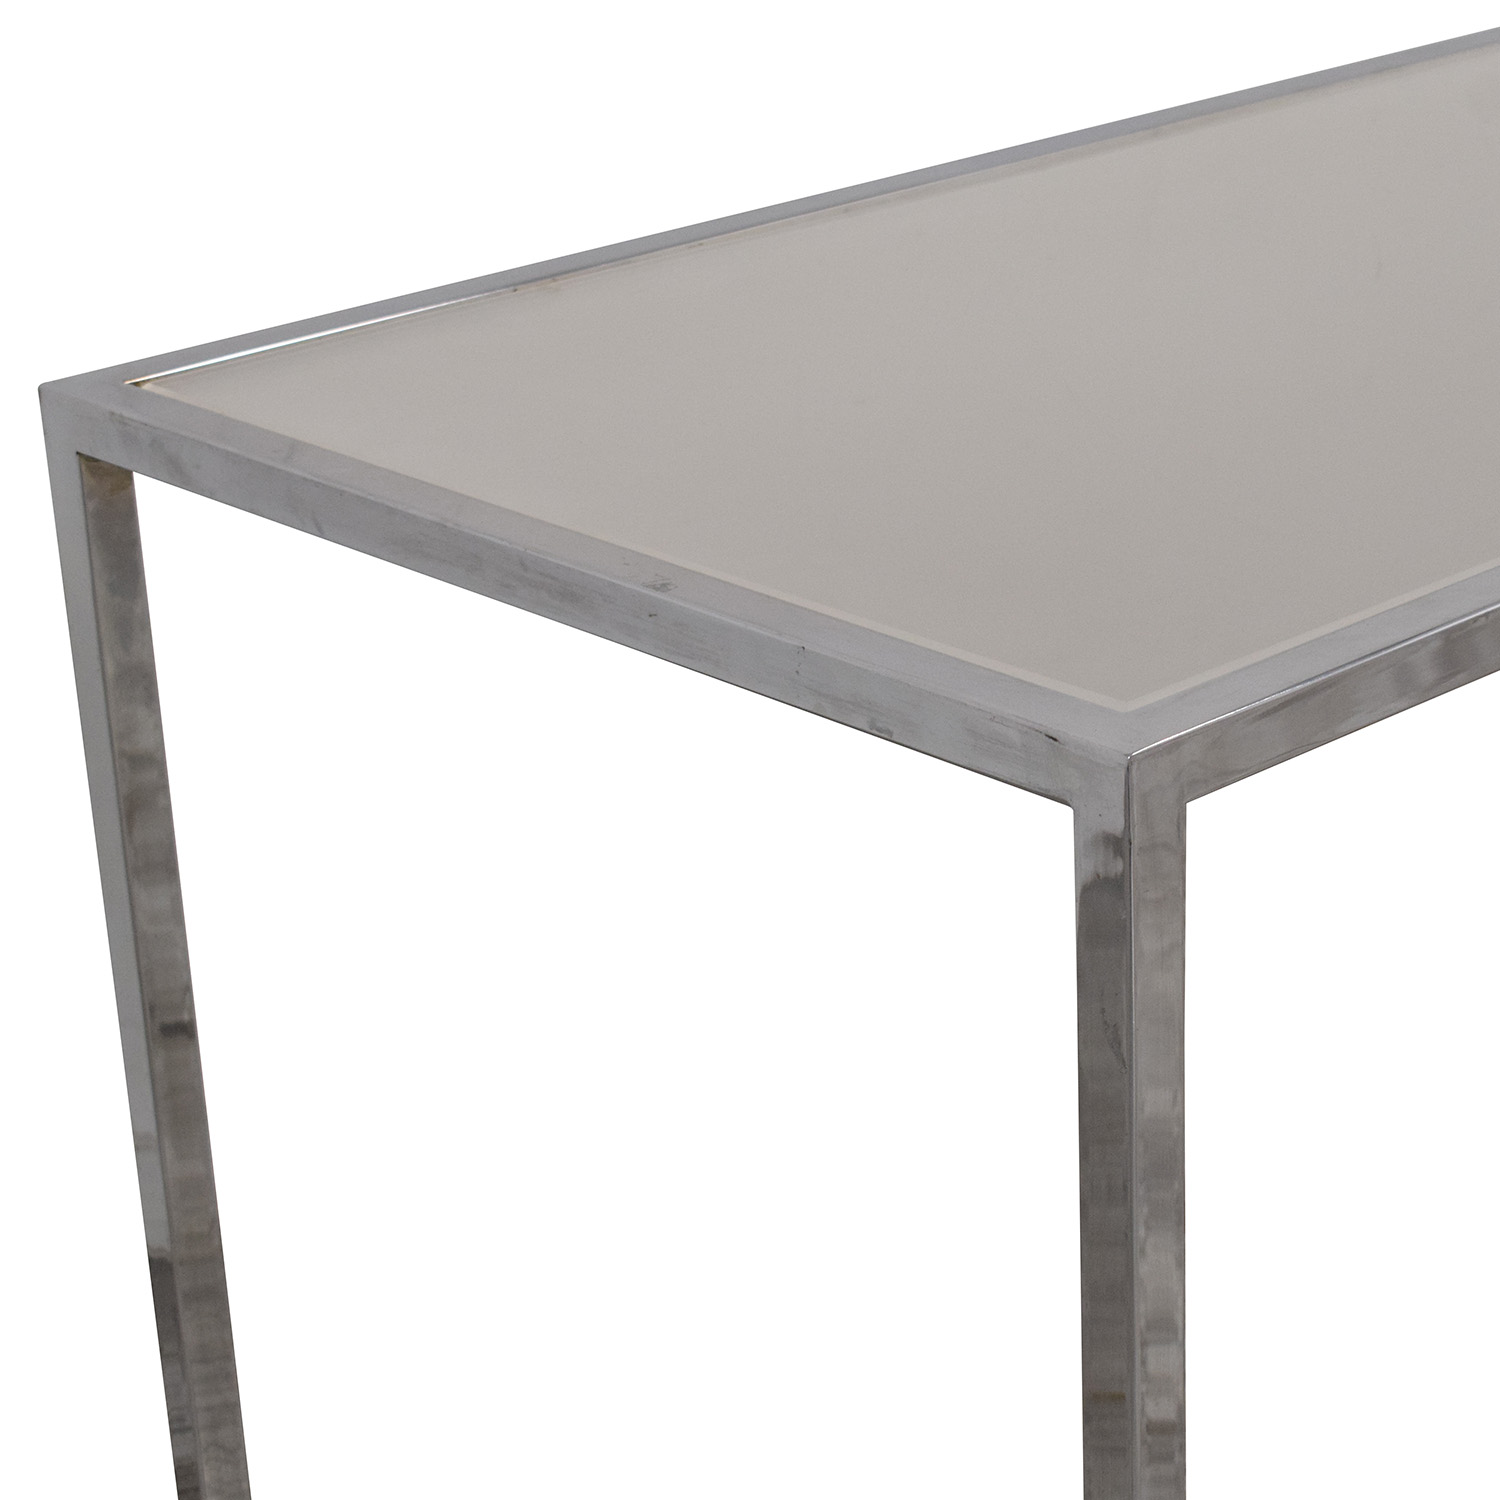 Chrome Base Dining Table with Sunken Glass Top discount